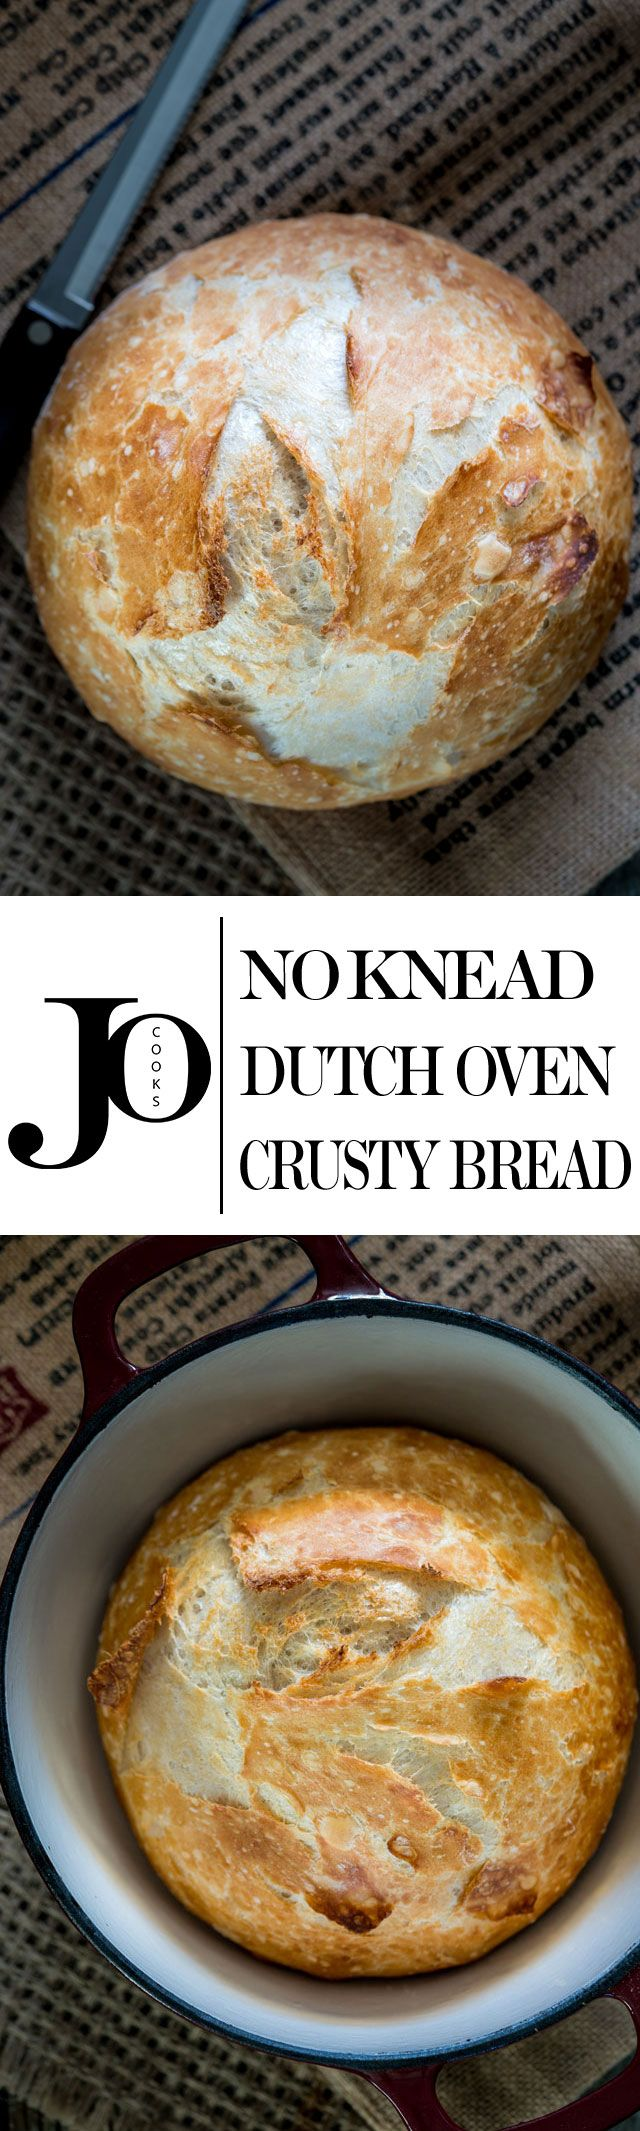 No Knead Dutch Oven Crusty Bread - no kneading required, 4 simple ingredients, baked in a Dutch Oven! The result is simple perfection, hands down the best bread you'll ever eat!